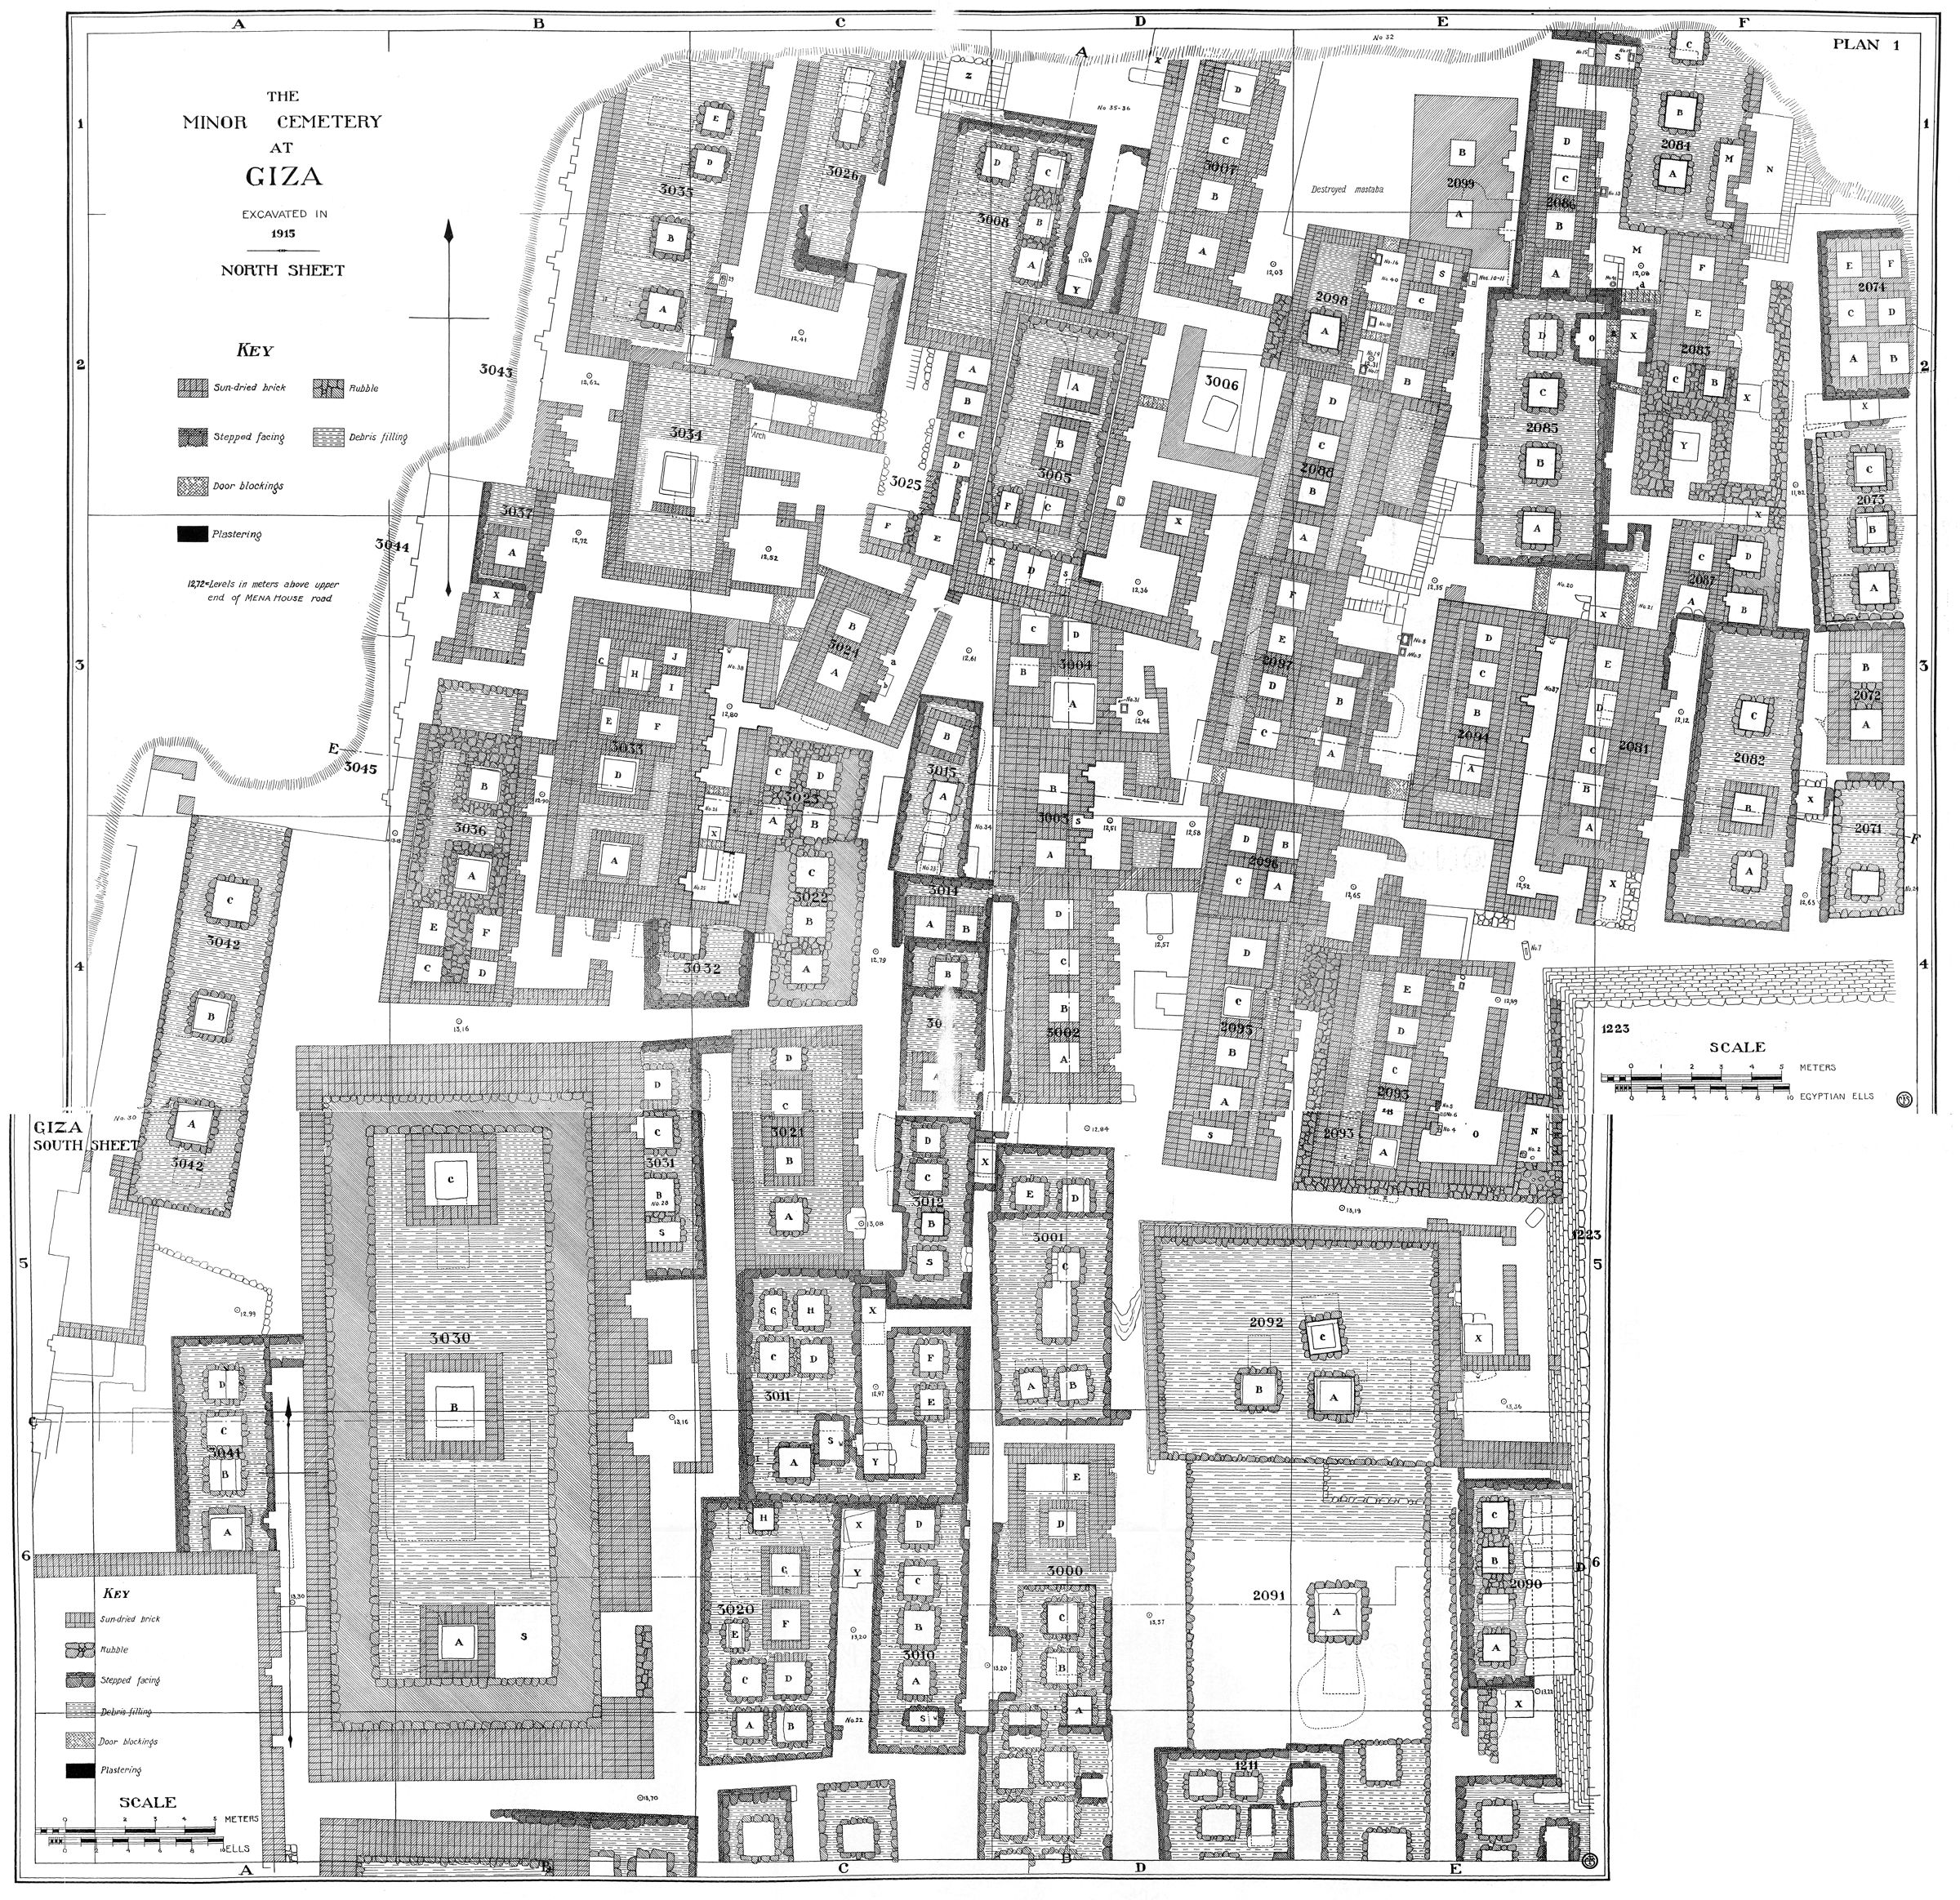 """Maps and plans: Plan of Fisher """"Minor Cemetery"""" G 3000"""